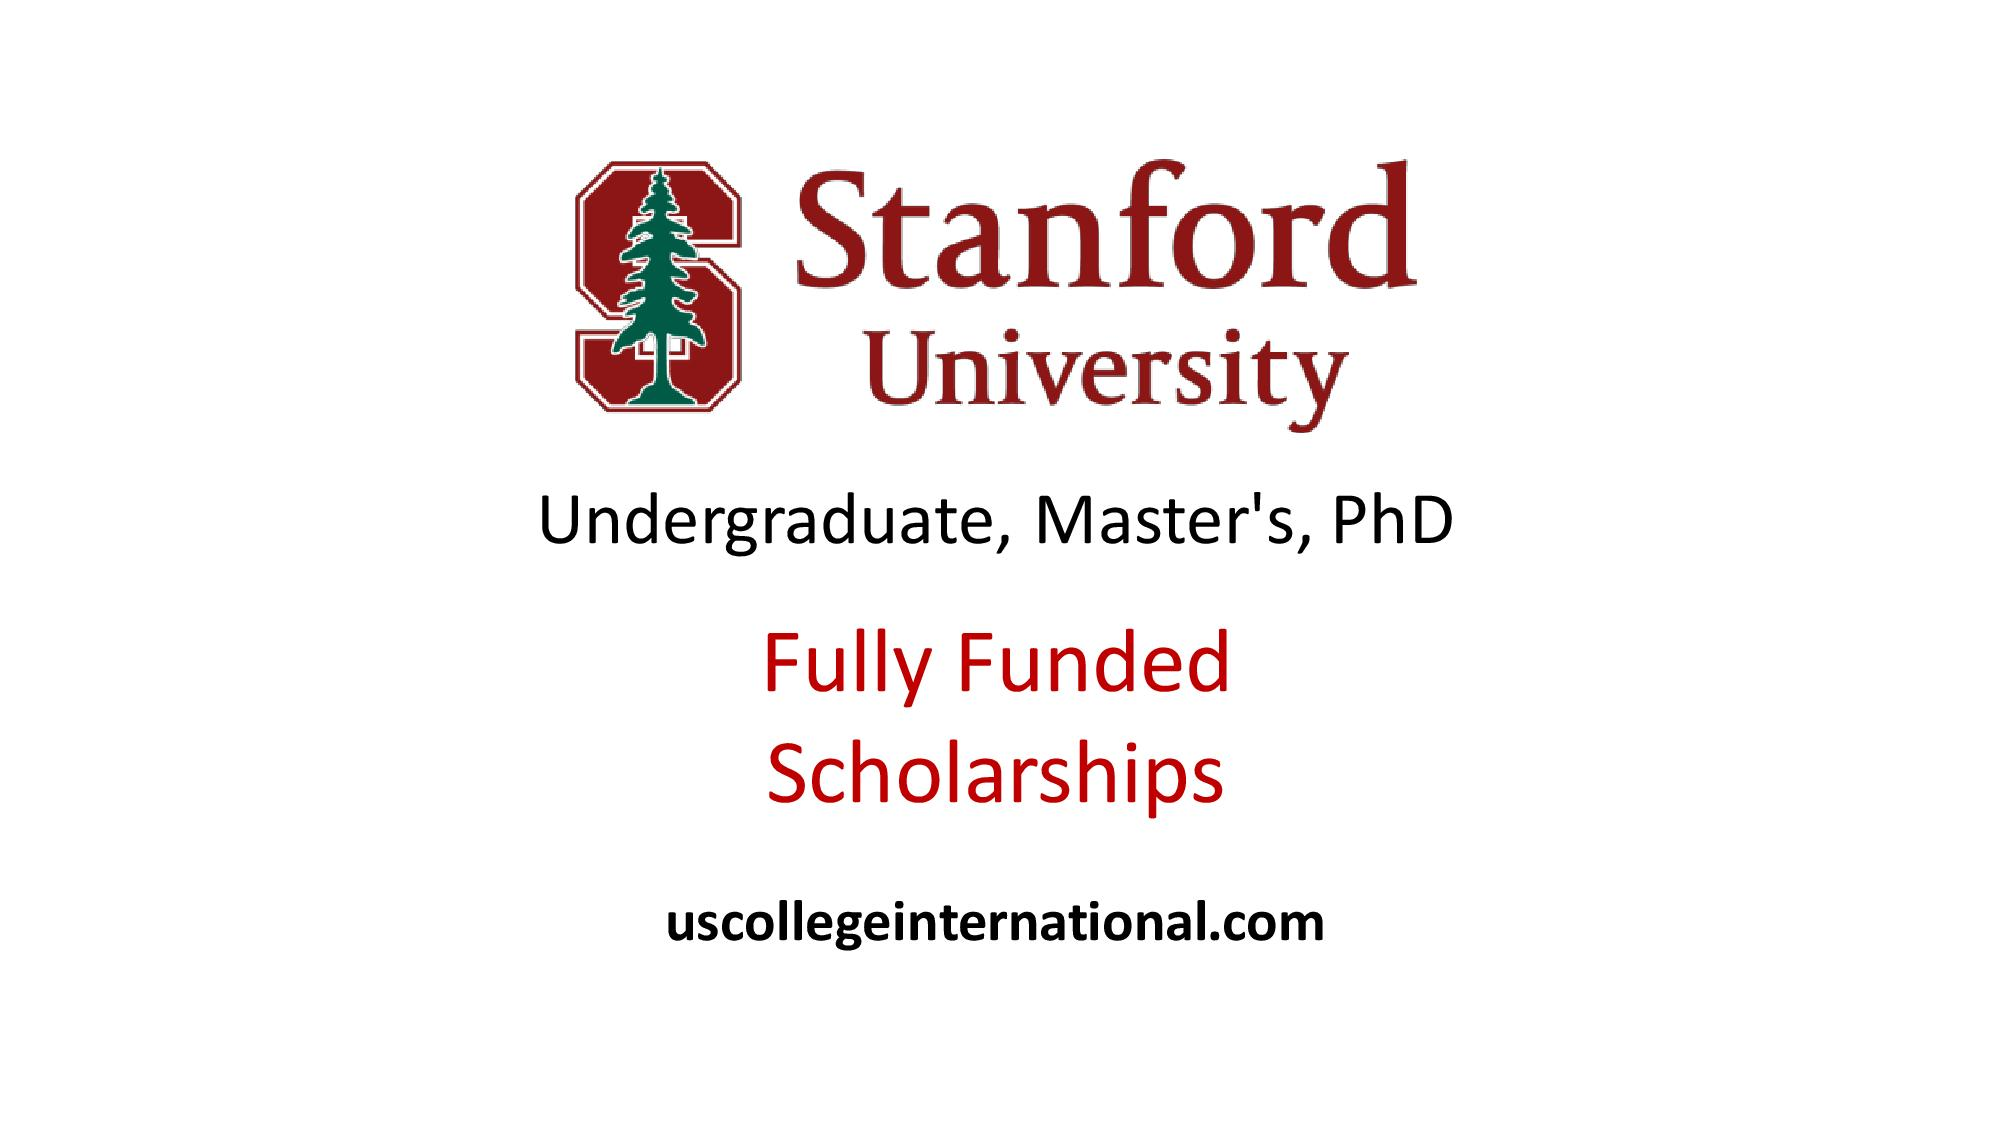 stanford university scholarships 2018 fully funded global